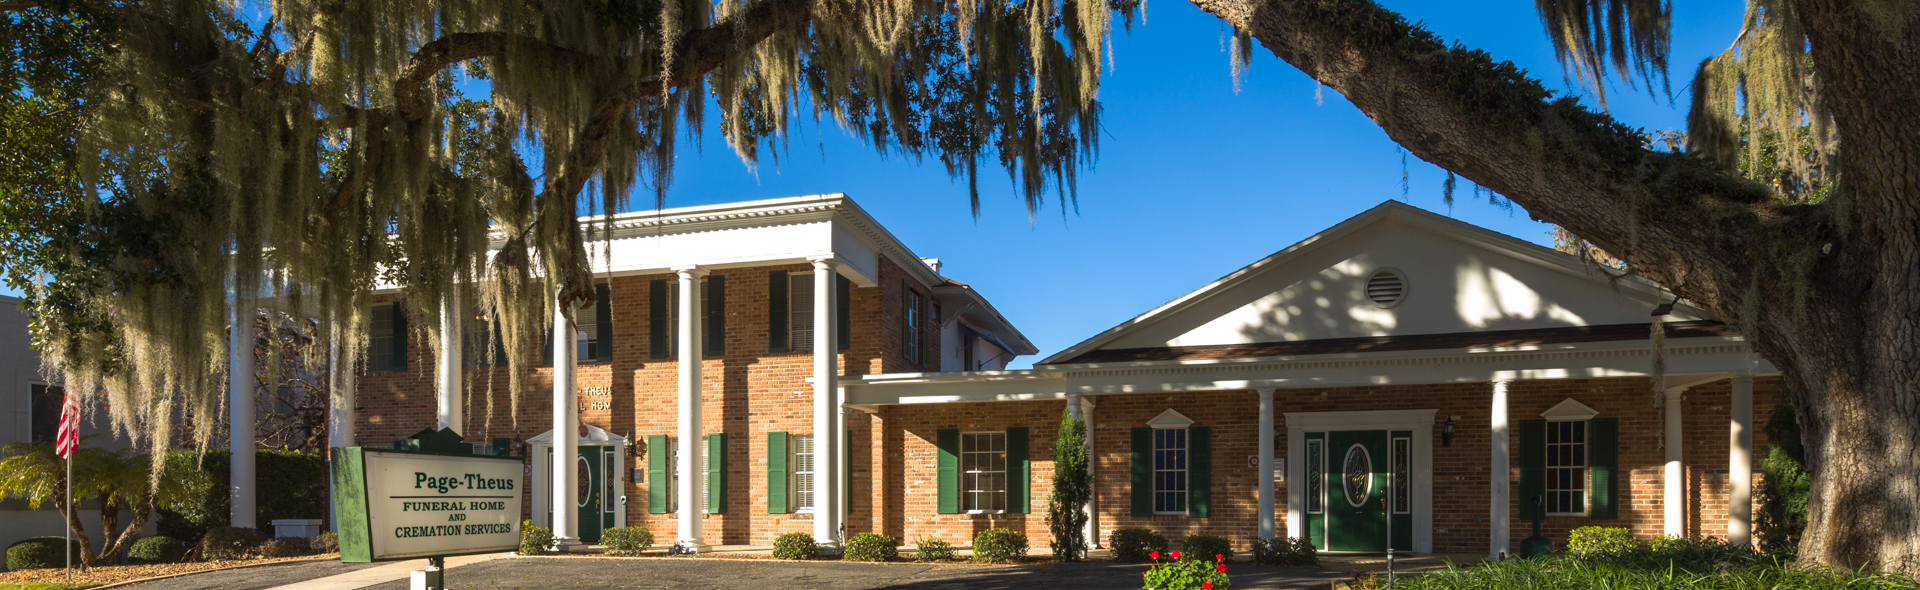 Page-Theus Funeral Home